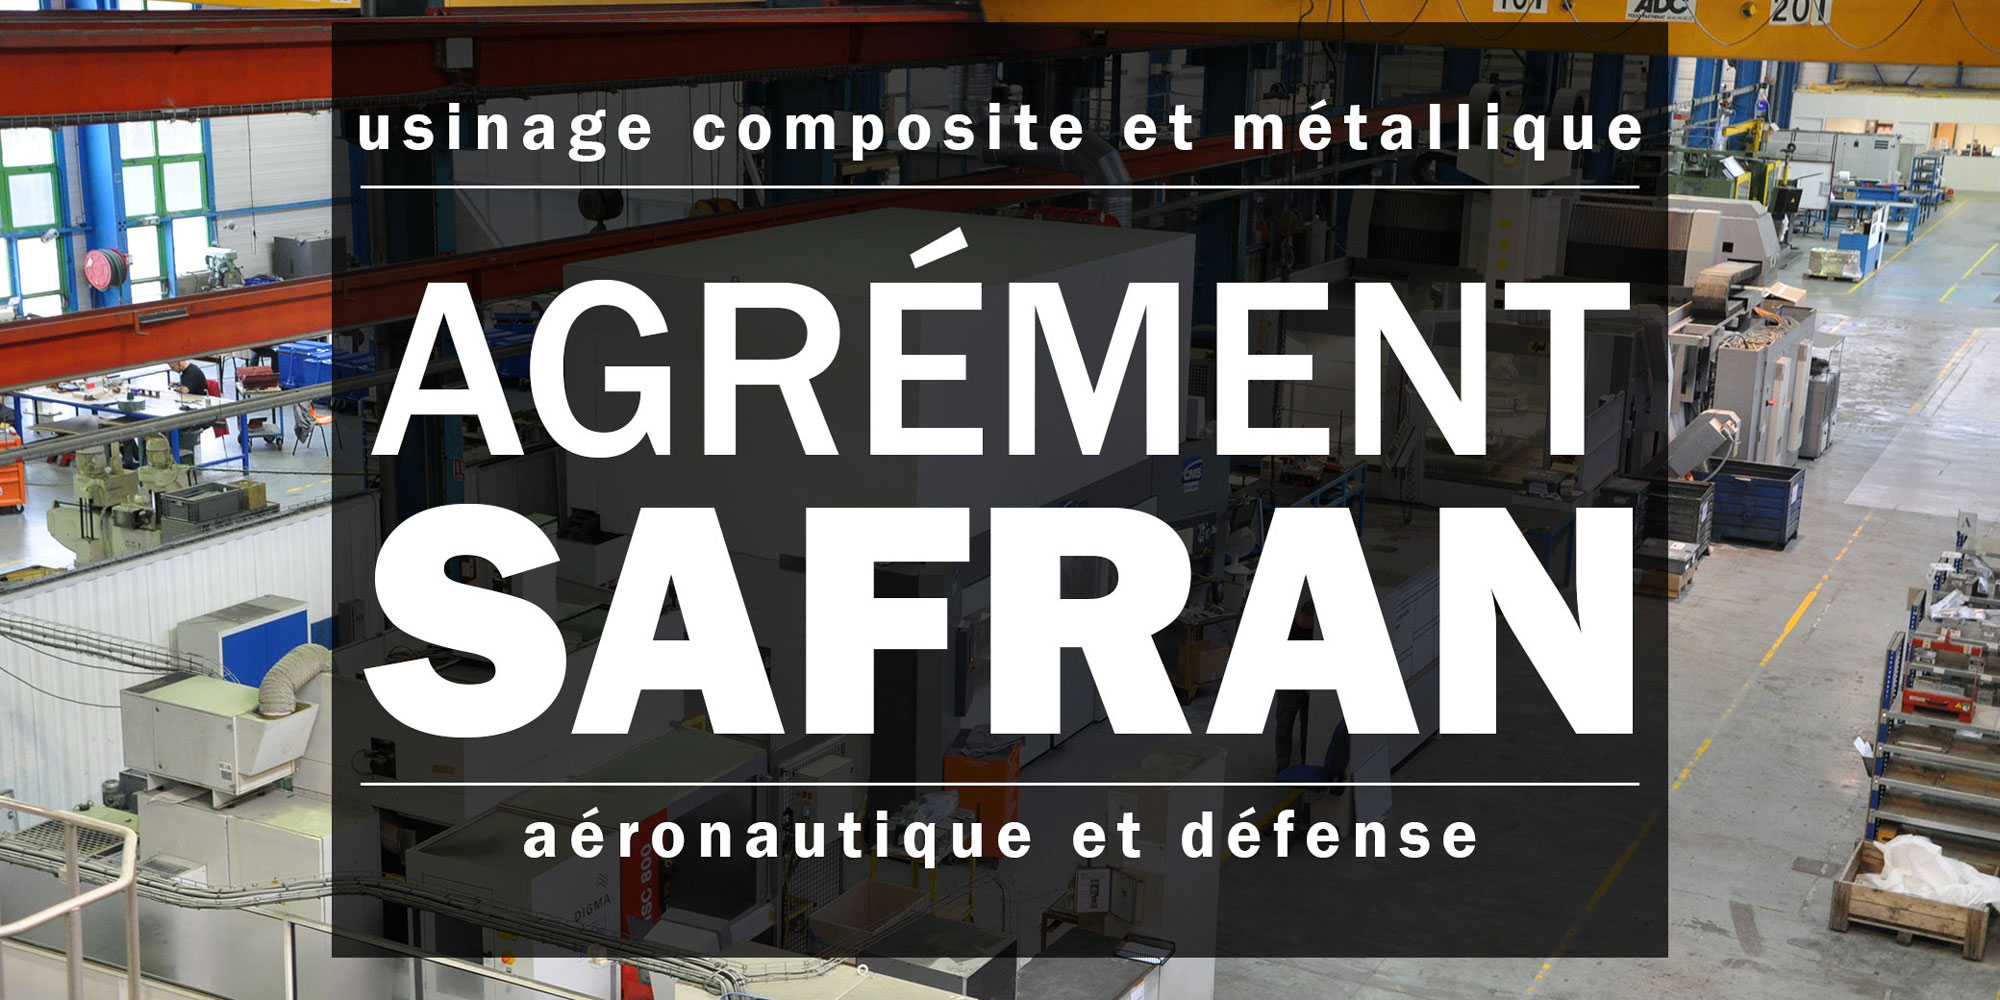 Agrement SAFRAN ORATECH usinage